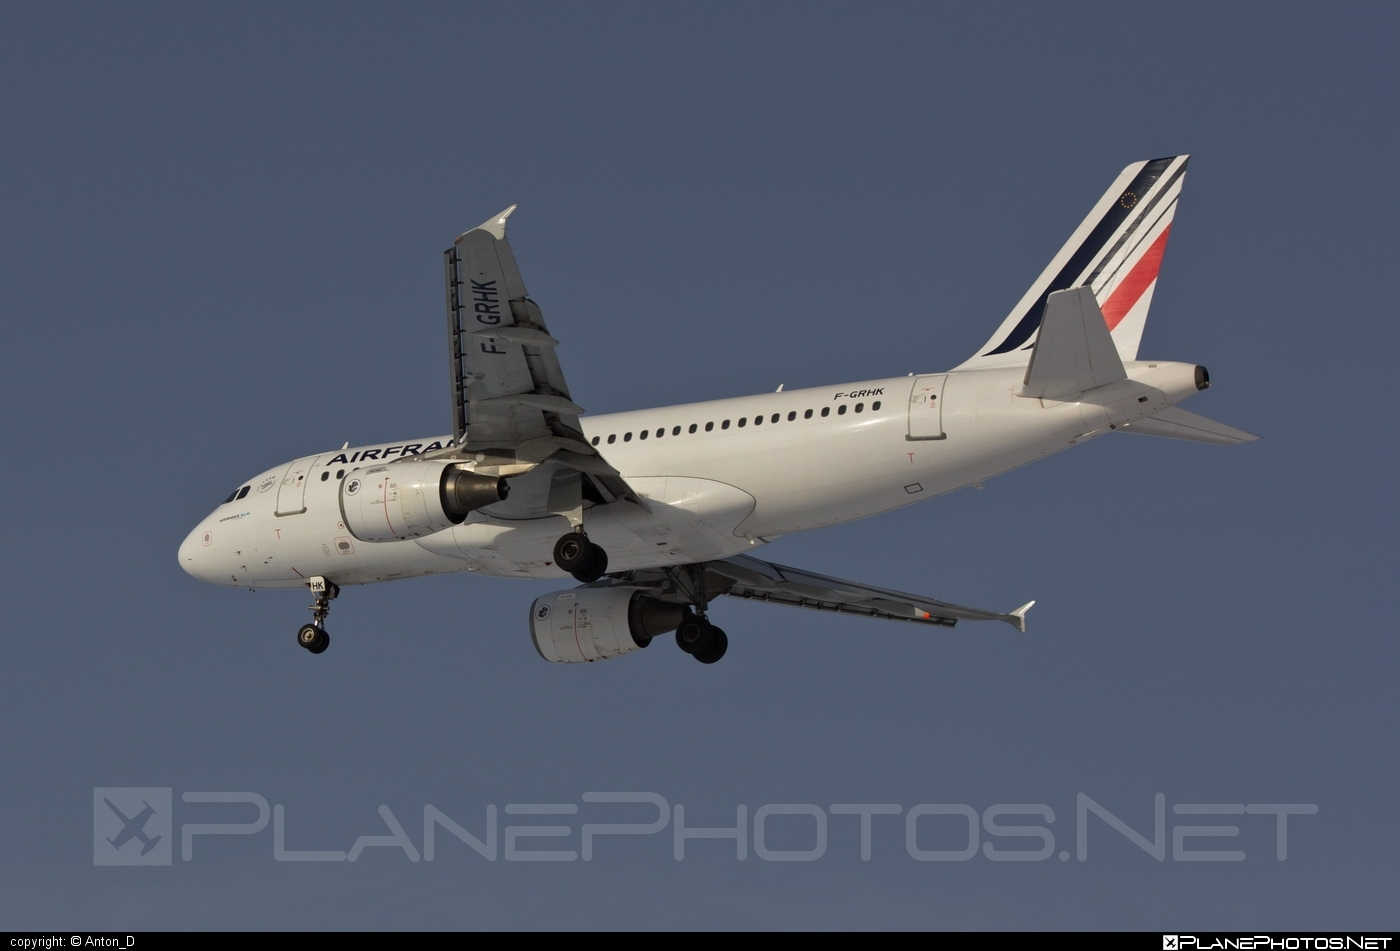 Airbus A319-111 - F-GRHK operated by Air France #a319 #a320family #airbus #airbus319 #airfrance